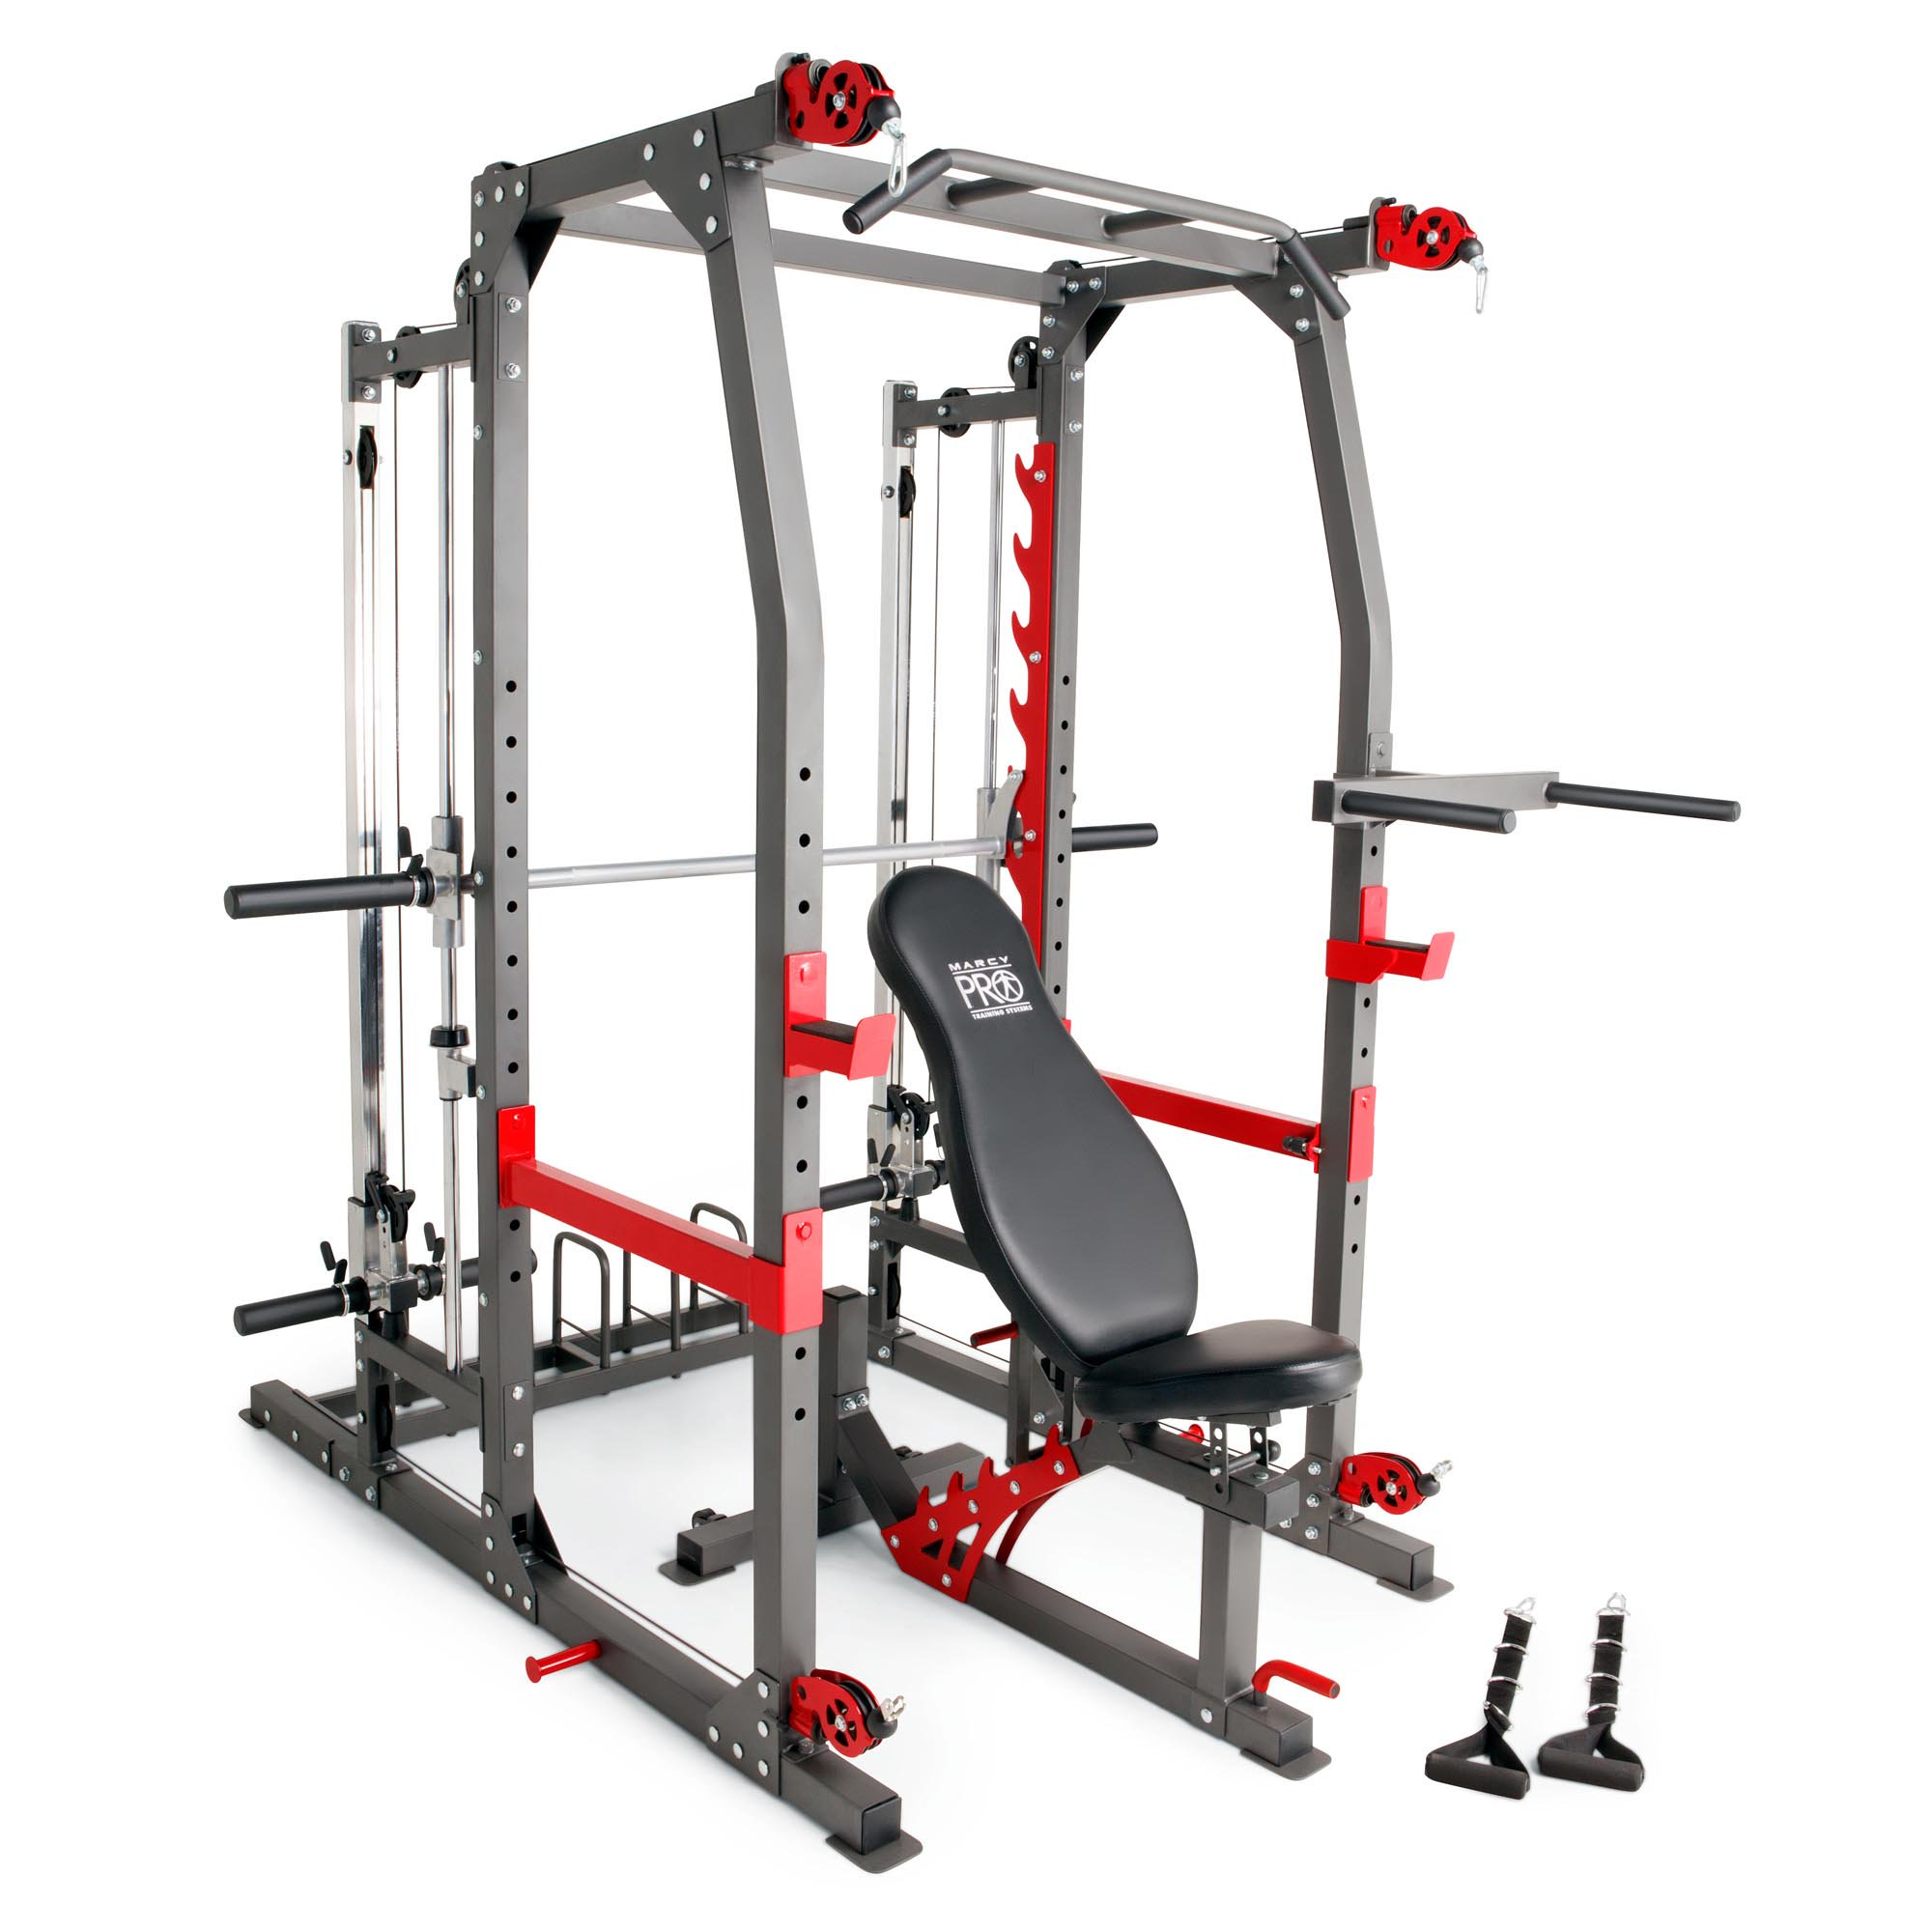 Powerhouse Weight Bench | Sports Authority Bench Press | Workout Bench Set